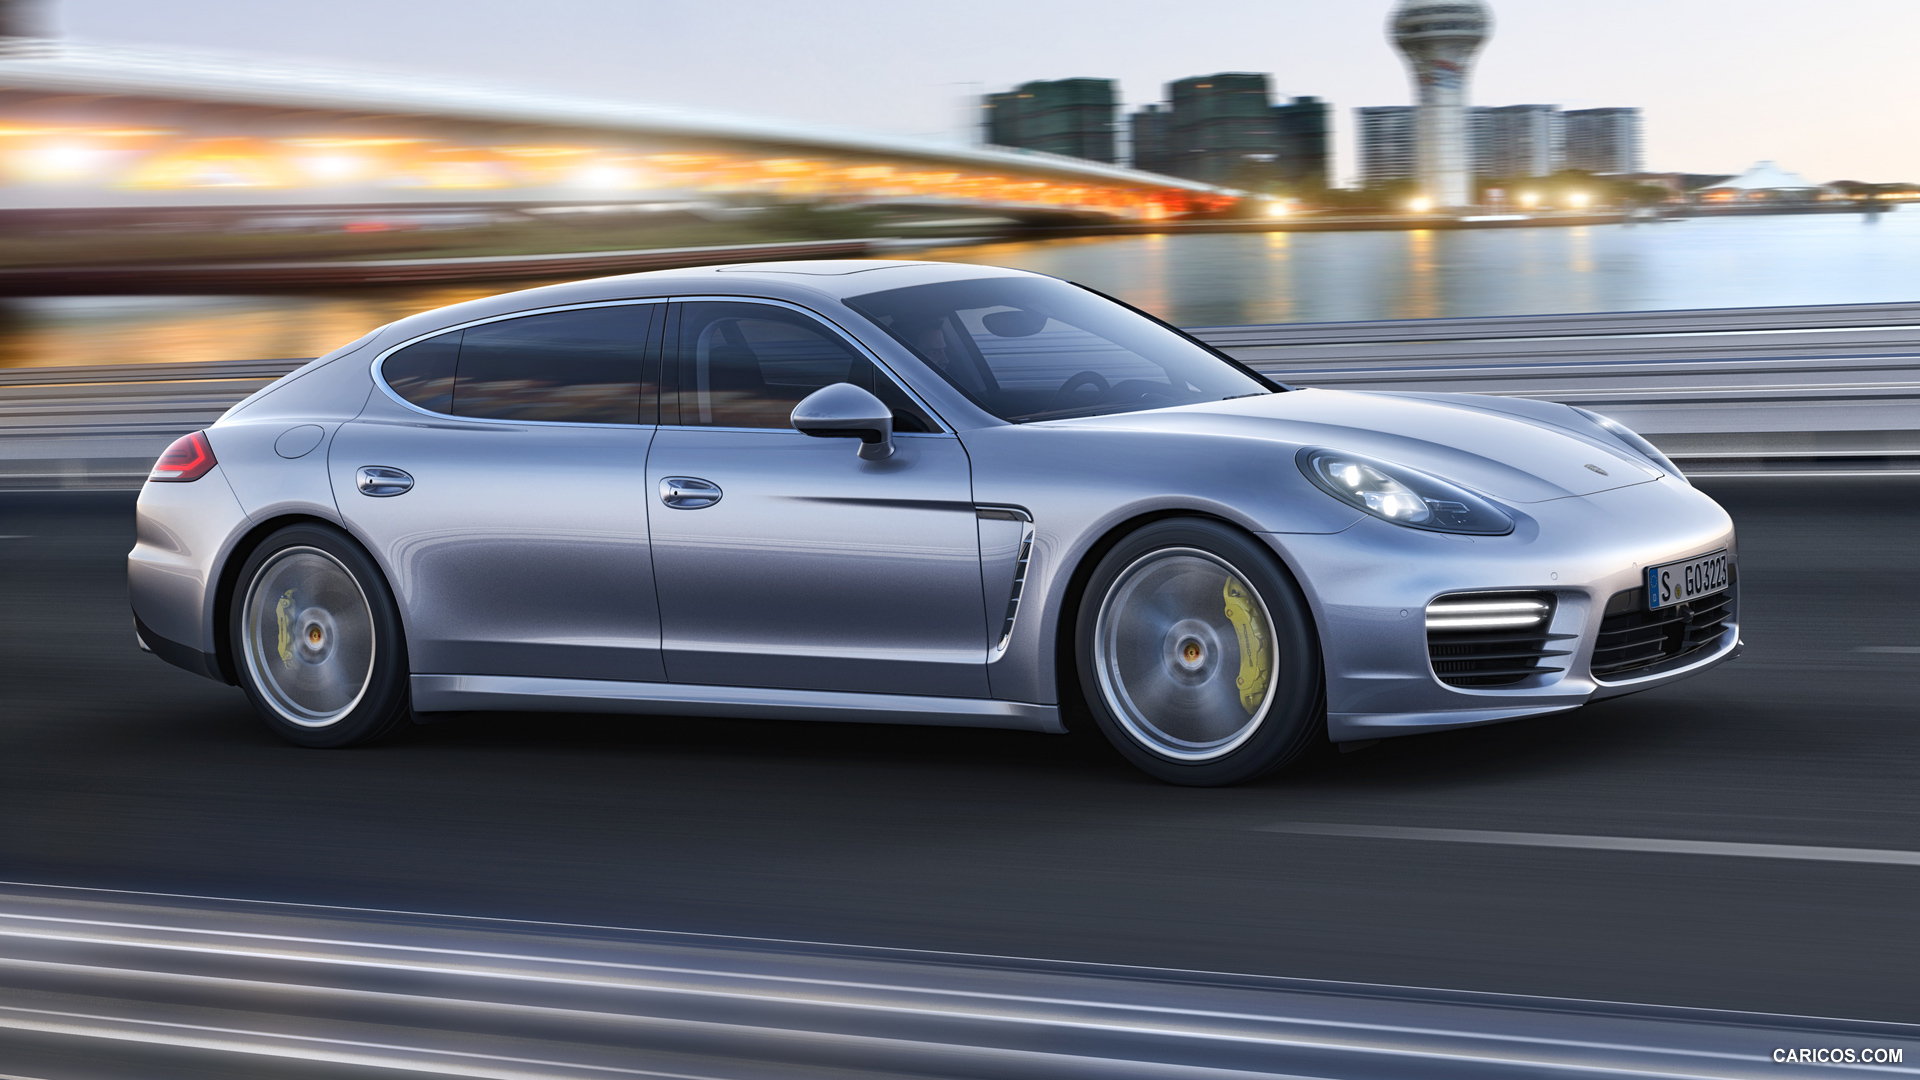 Porsche Panamera 27 Cool Hd Wallpaper Wallpaper 1920x1080